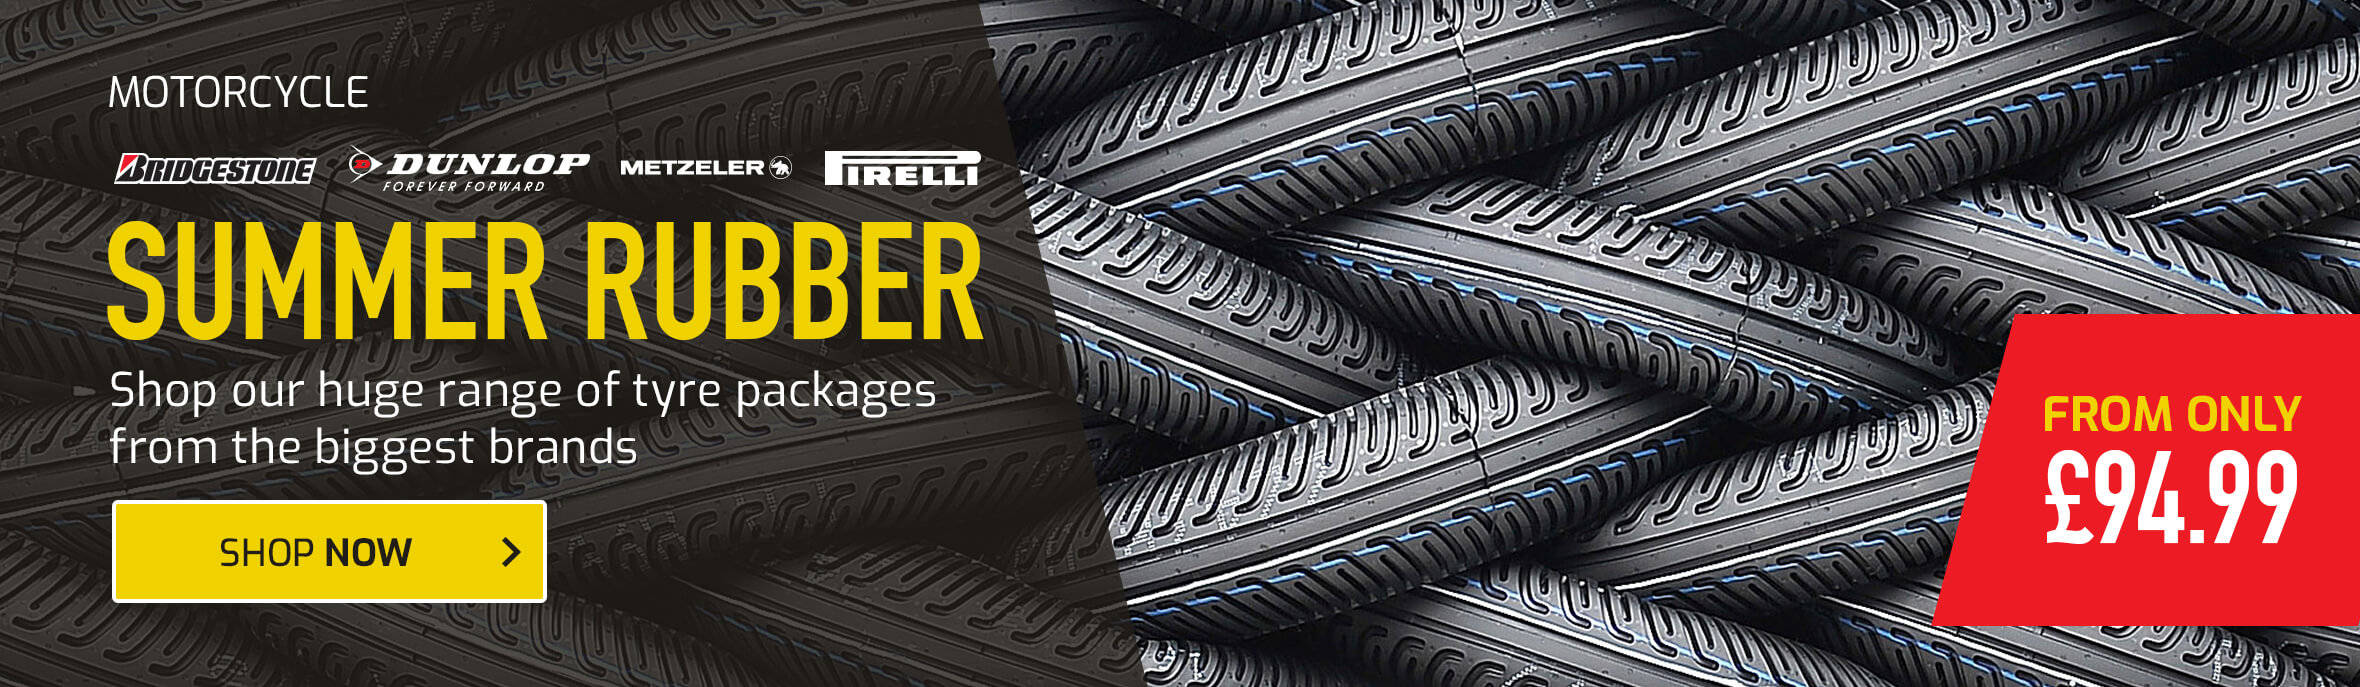 Shop the Huge Range of Tyre Packages from the Biggest Brands